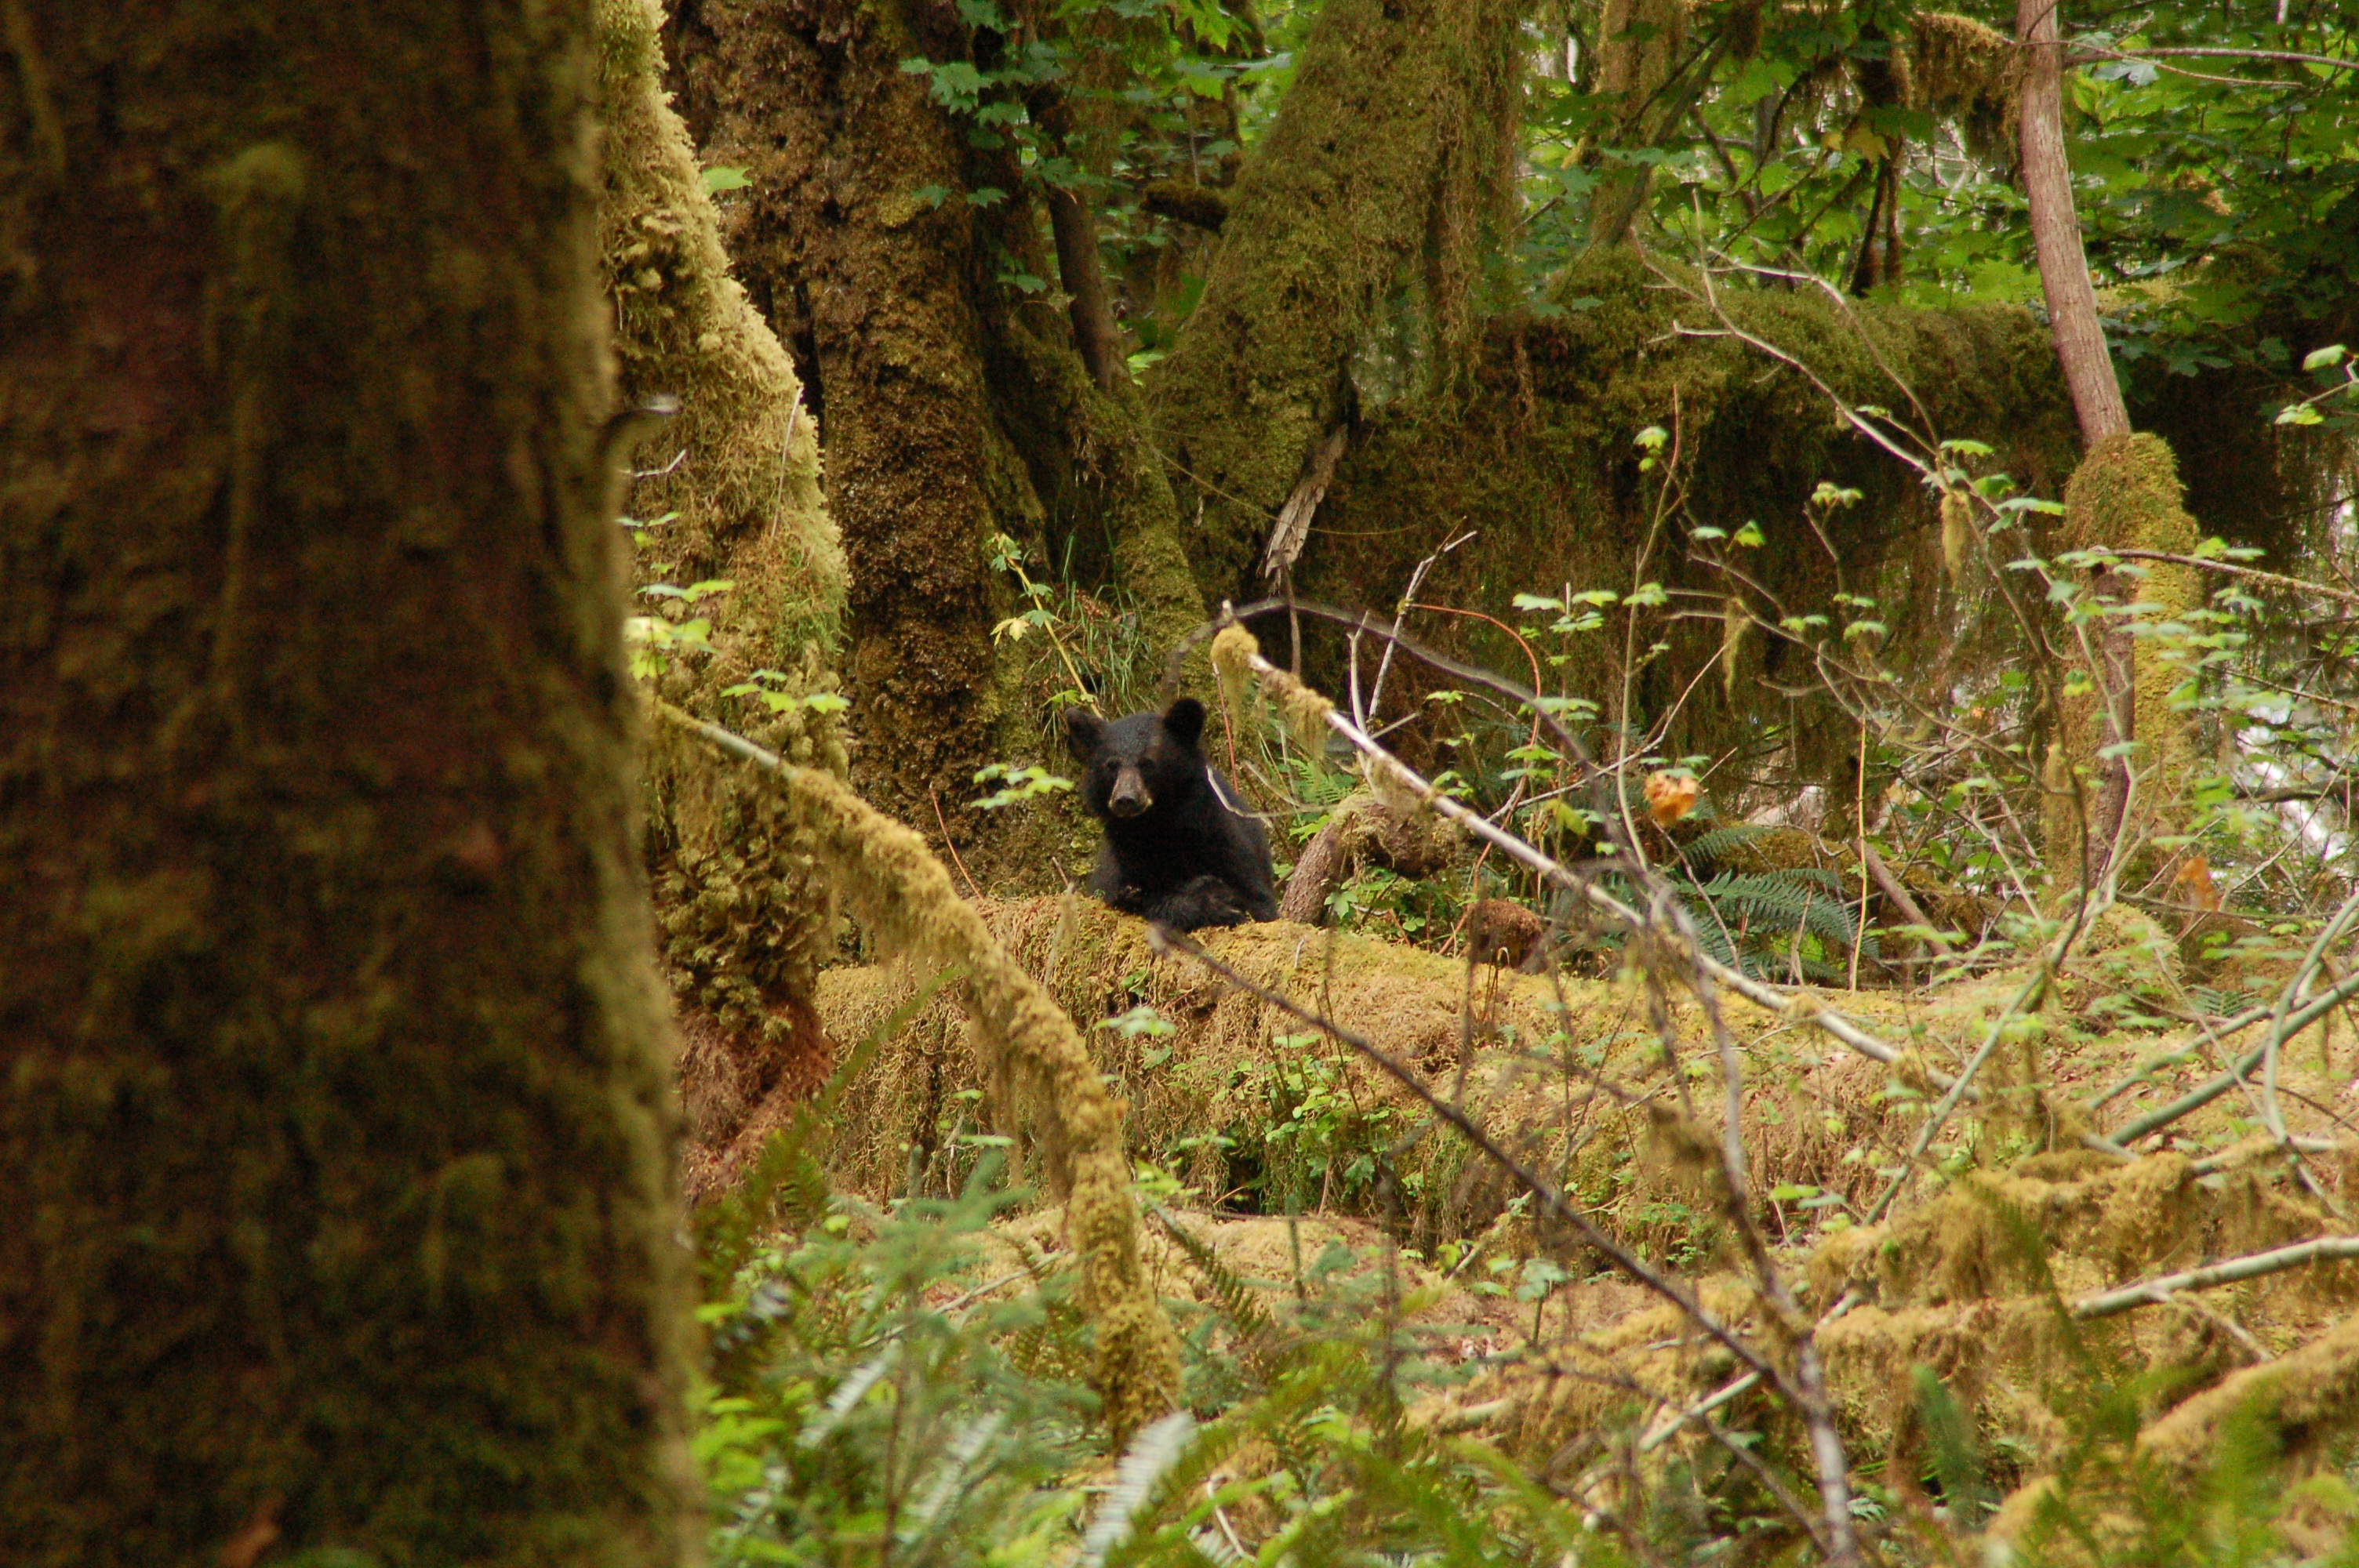 Black bear in moss covered forest